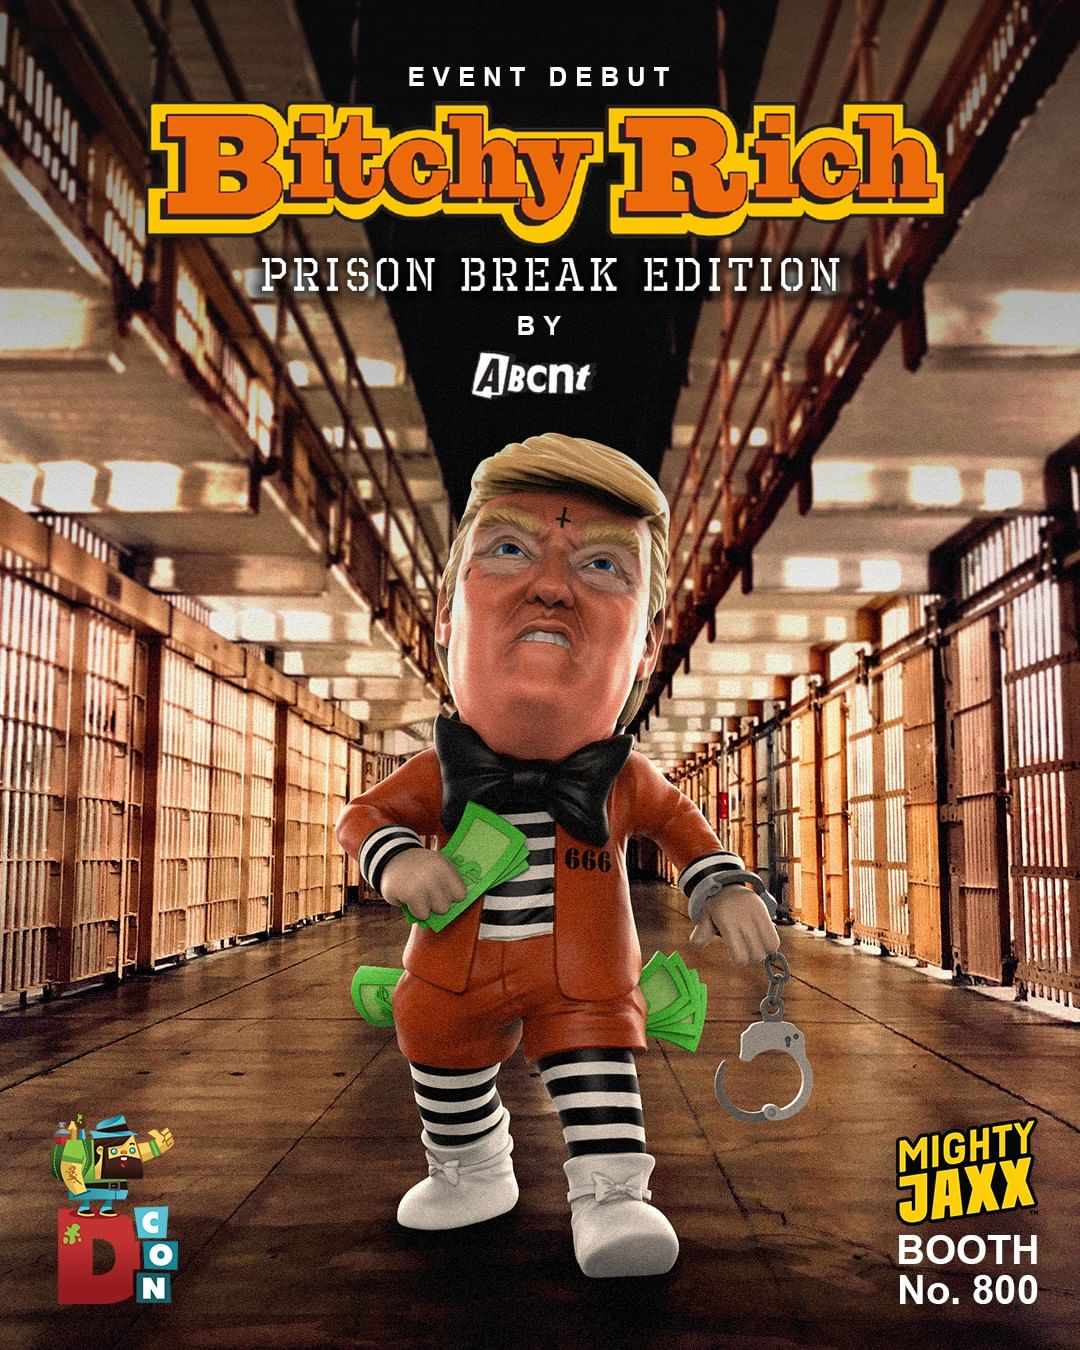 Bitchy Rich Prison Break Edition. ABCNT x Mighty Jaxx. Debuts at DesignerCon 2019.